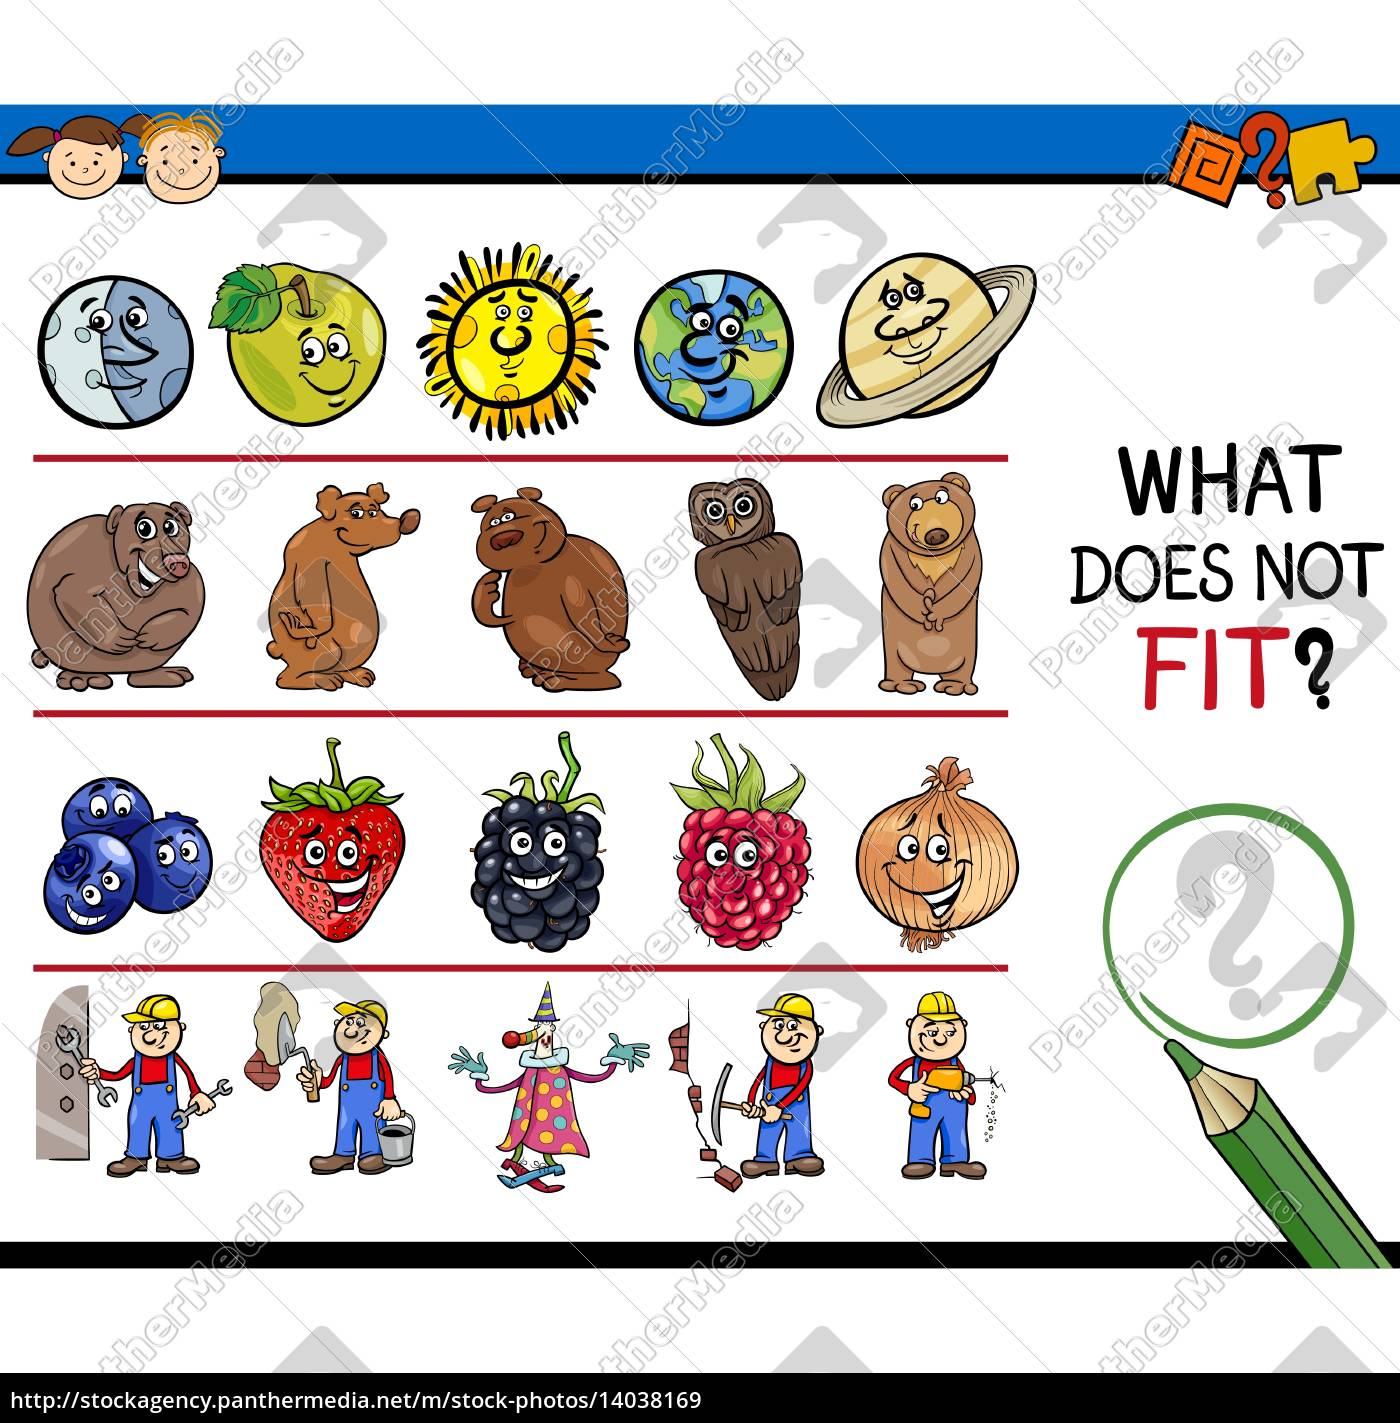 what, does, not, fit, game, cartoon - 14038169